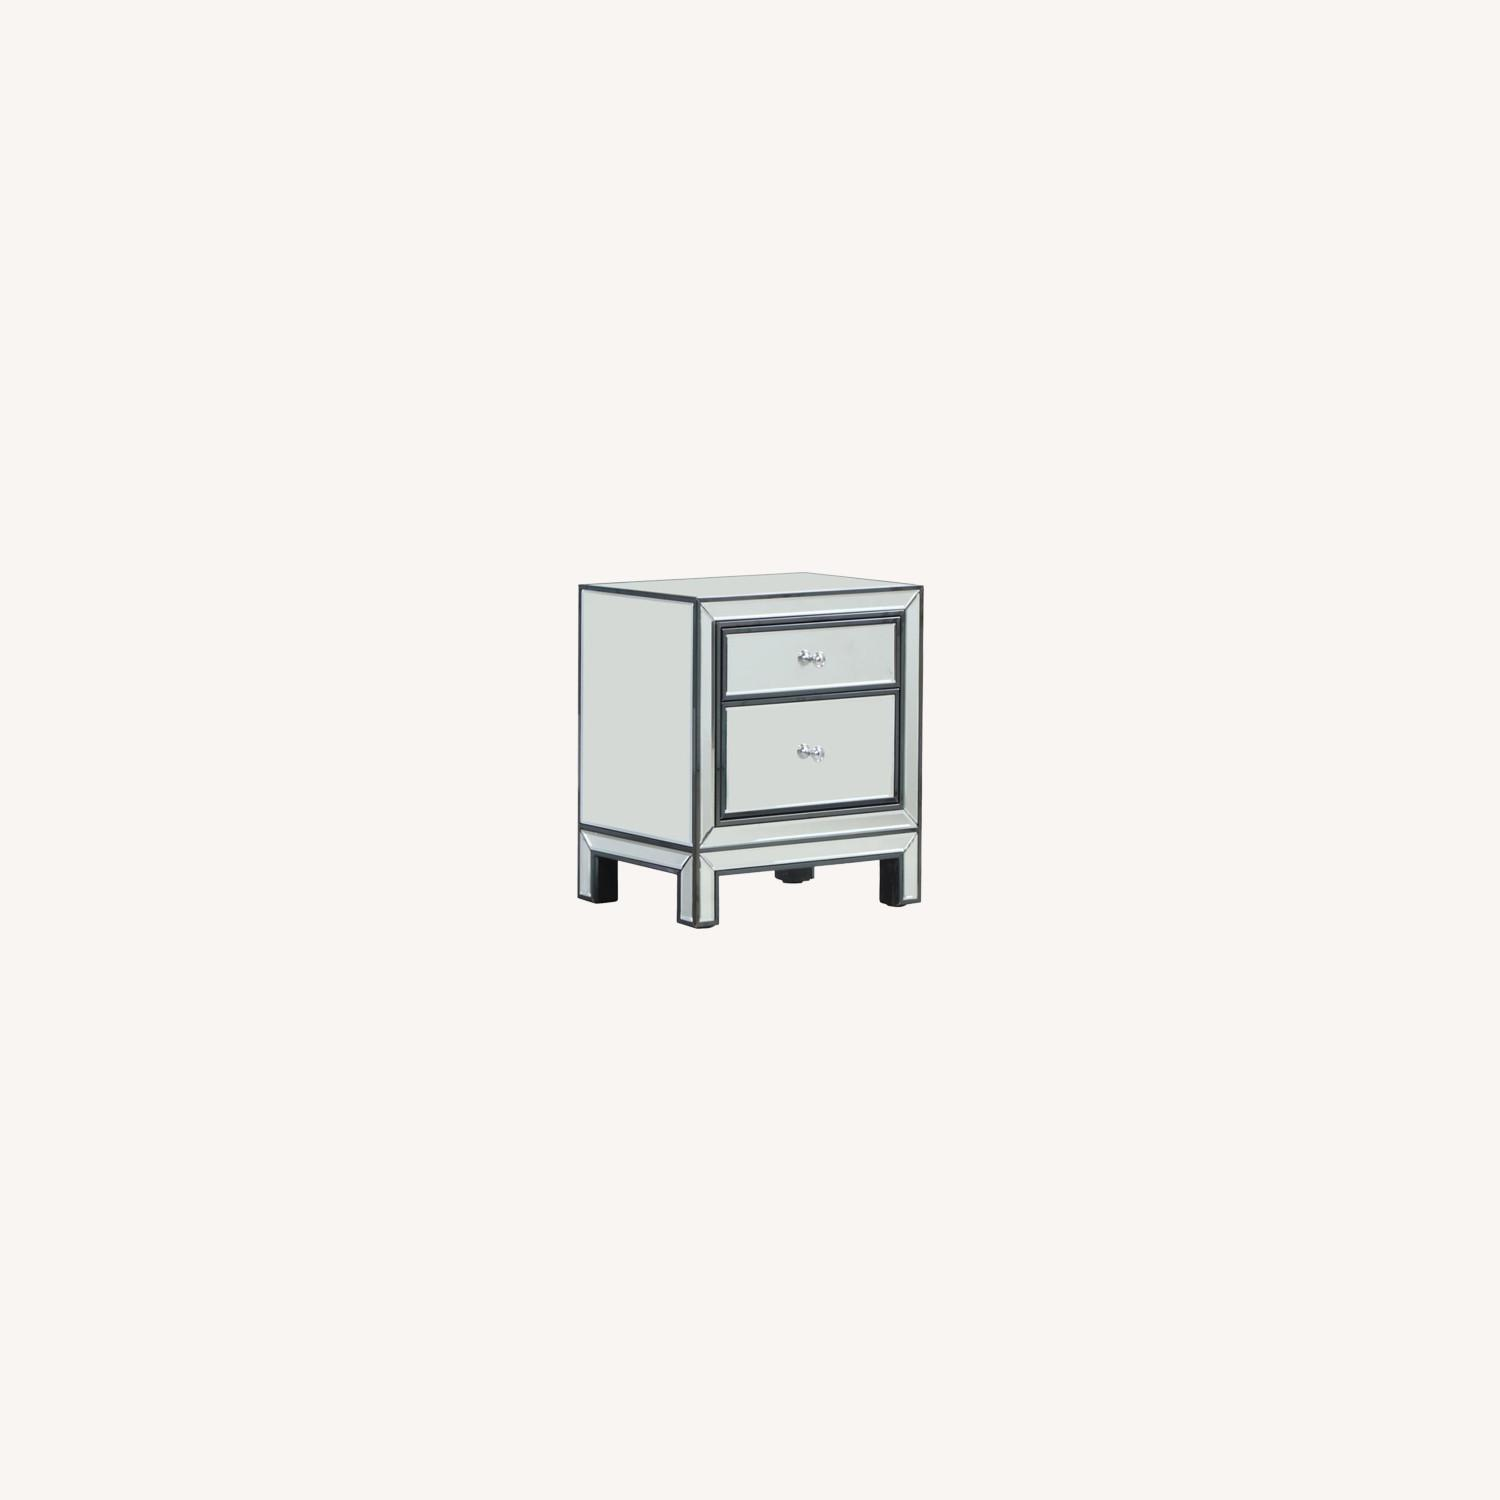 End Table W/ Mirrored Drawers In Silver Finish - image-3